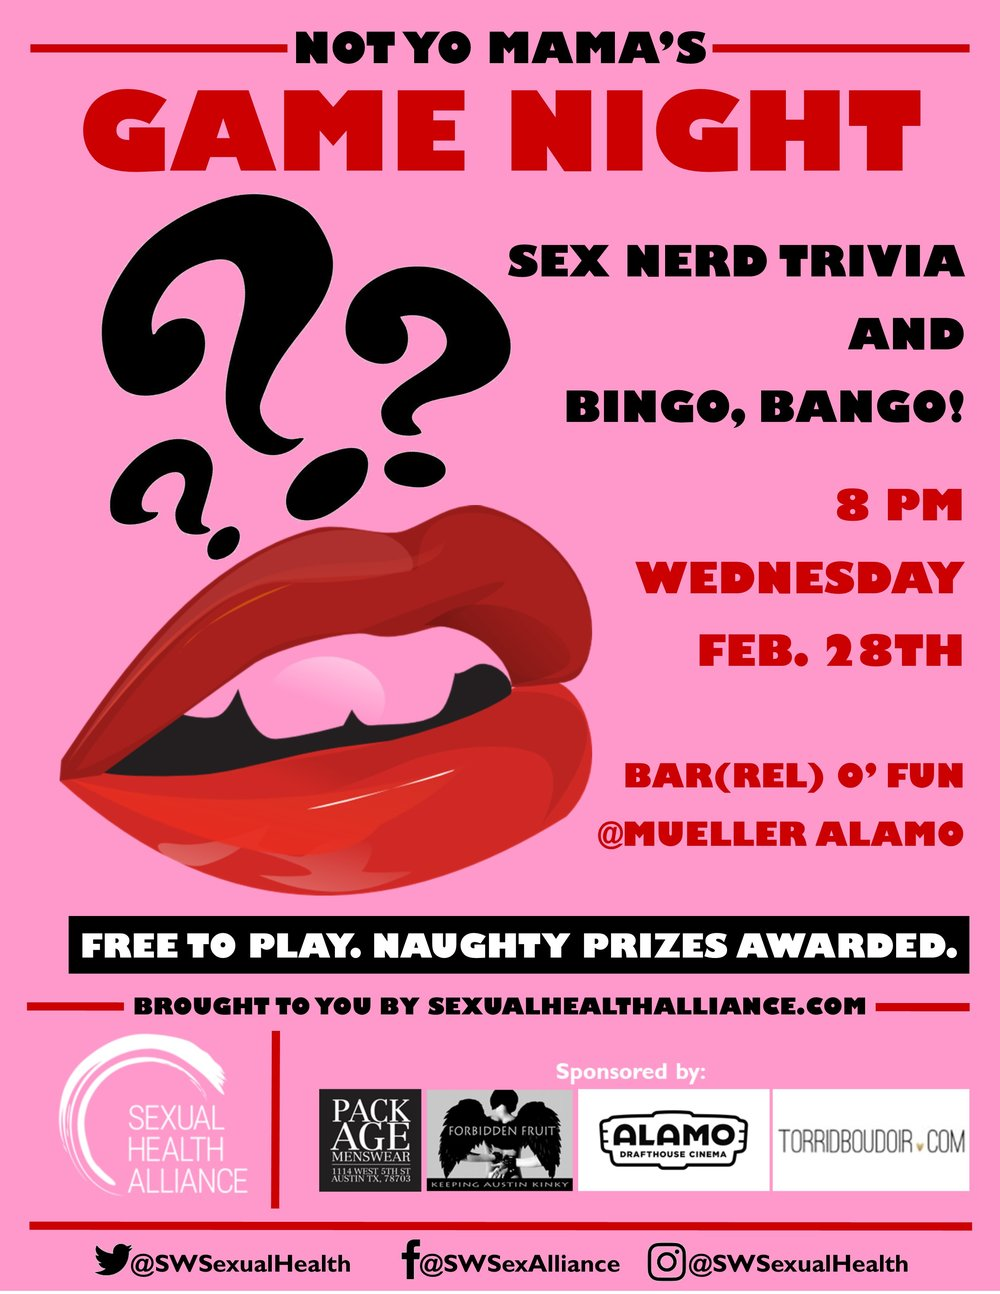 Not Yo Mama's Game Night Flyer - February.jpg